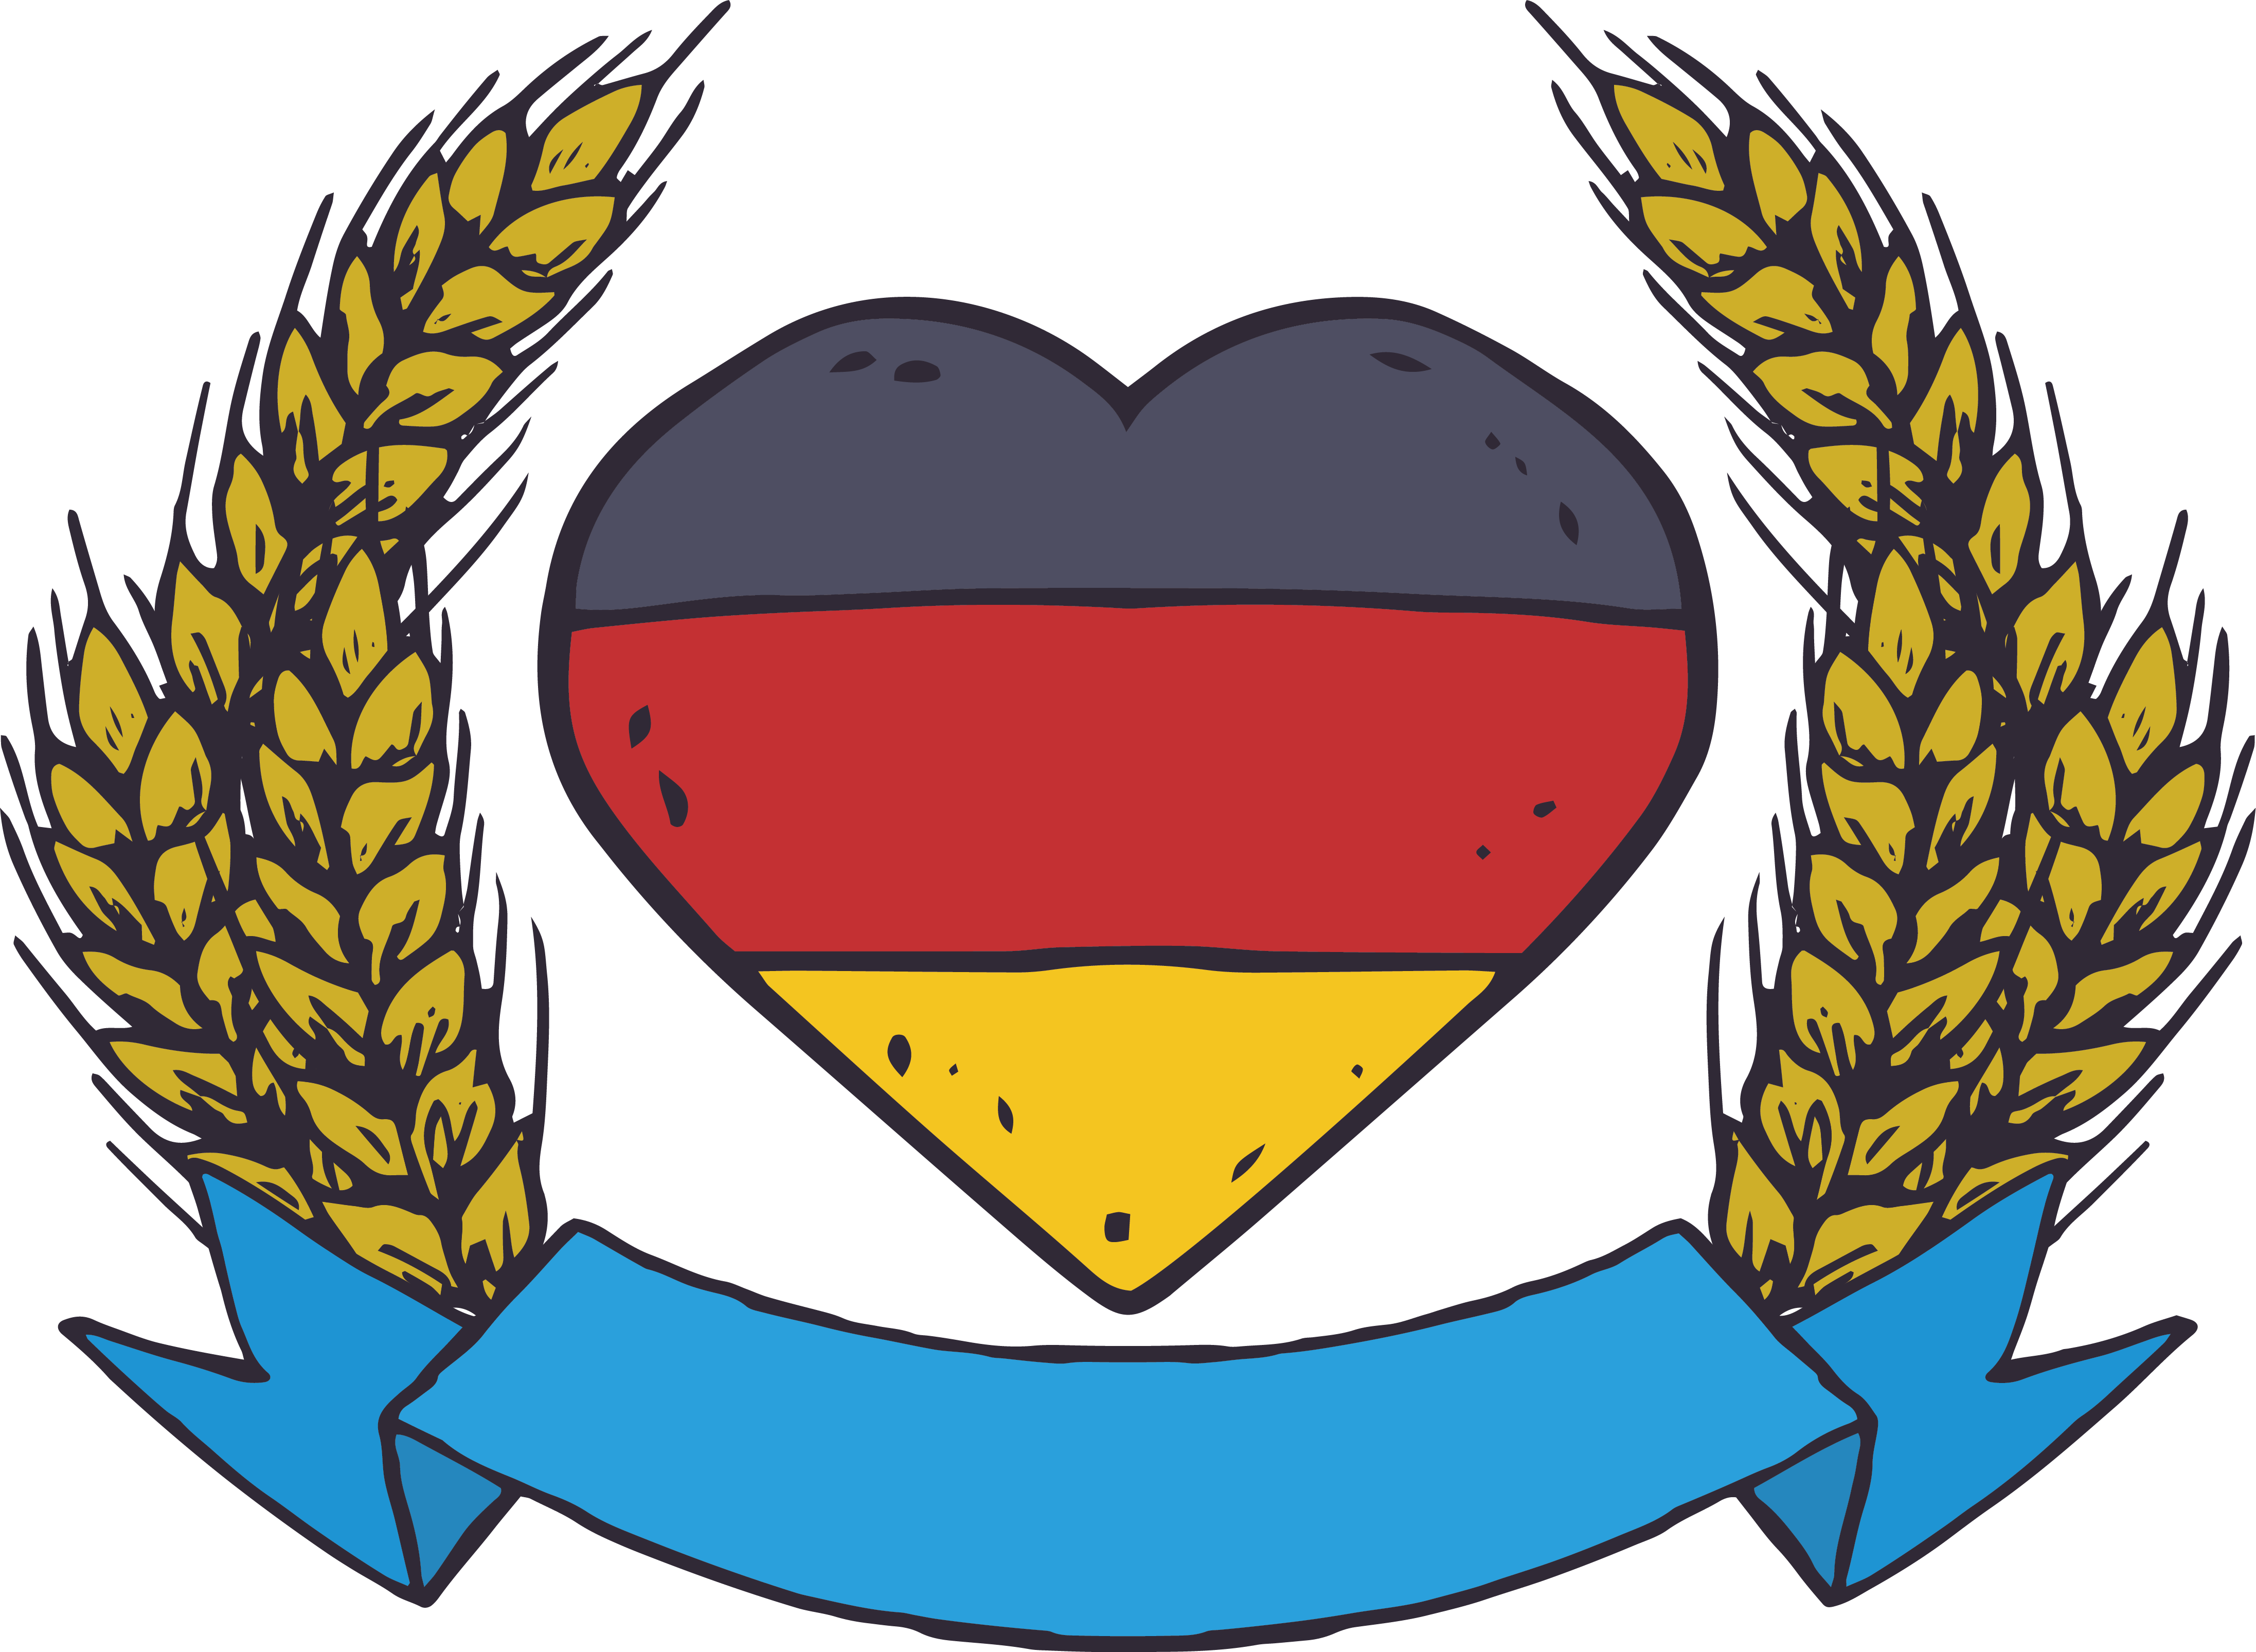 Oktoberfest clipart thing german. Germany beer illustration painted